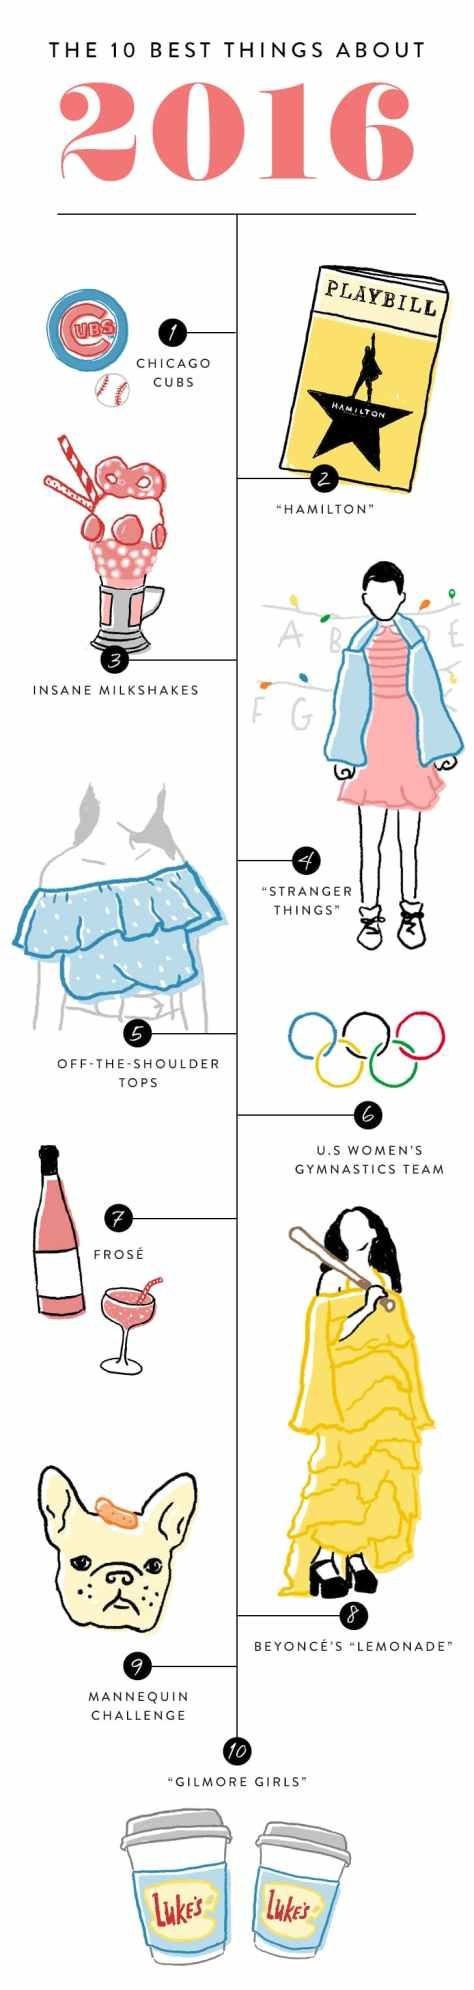 2016_best_things_infographic